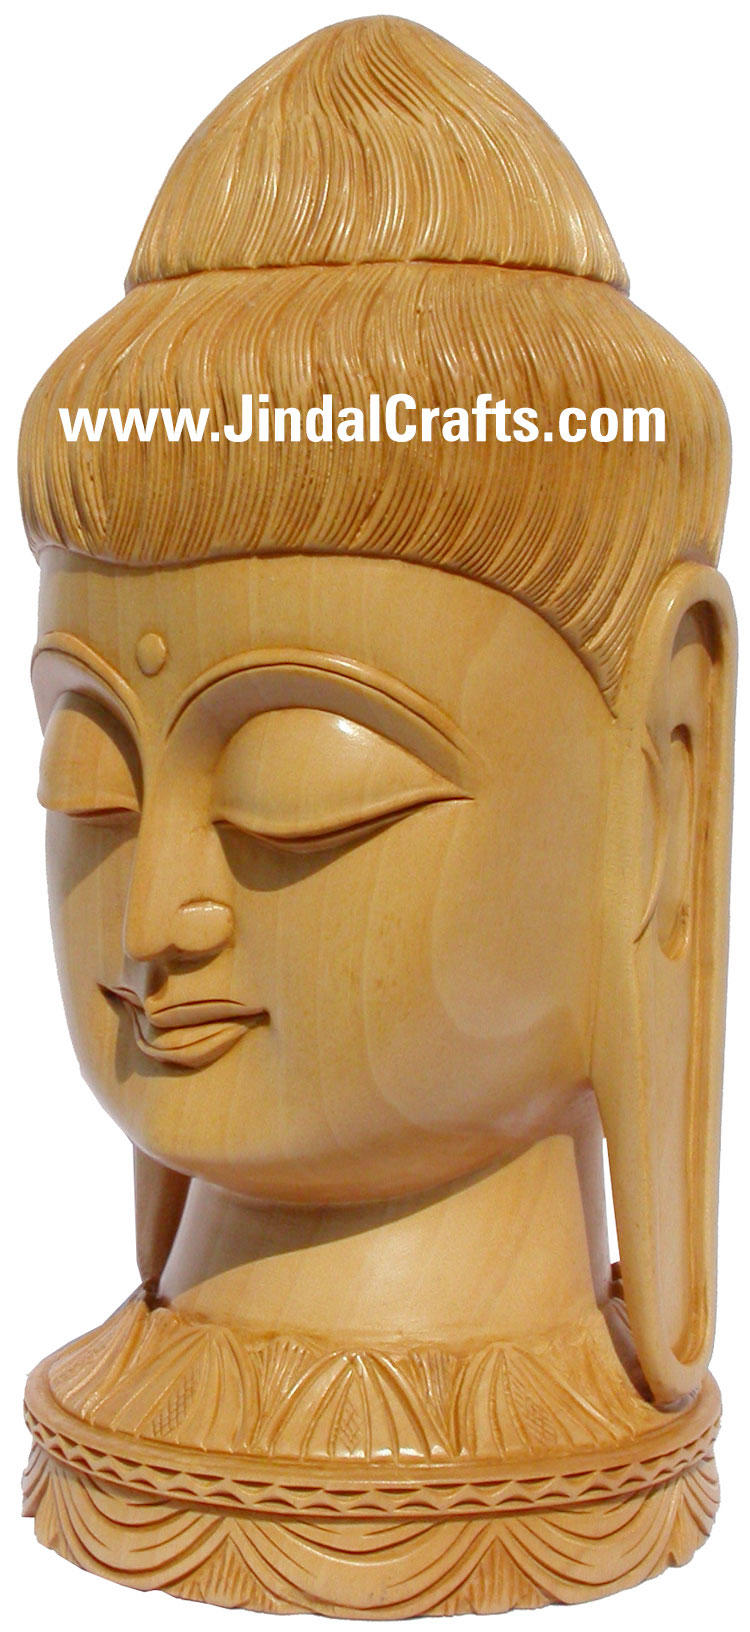 Wooden Hand Carved Gautam Buddha Head Indian Wood Figurine Art Idol Sculpture